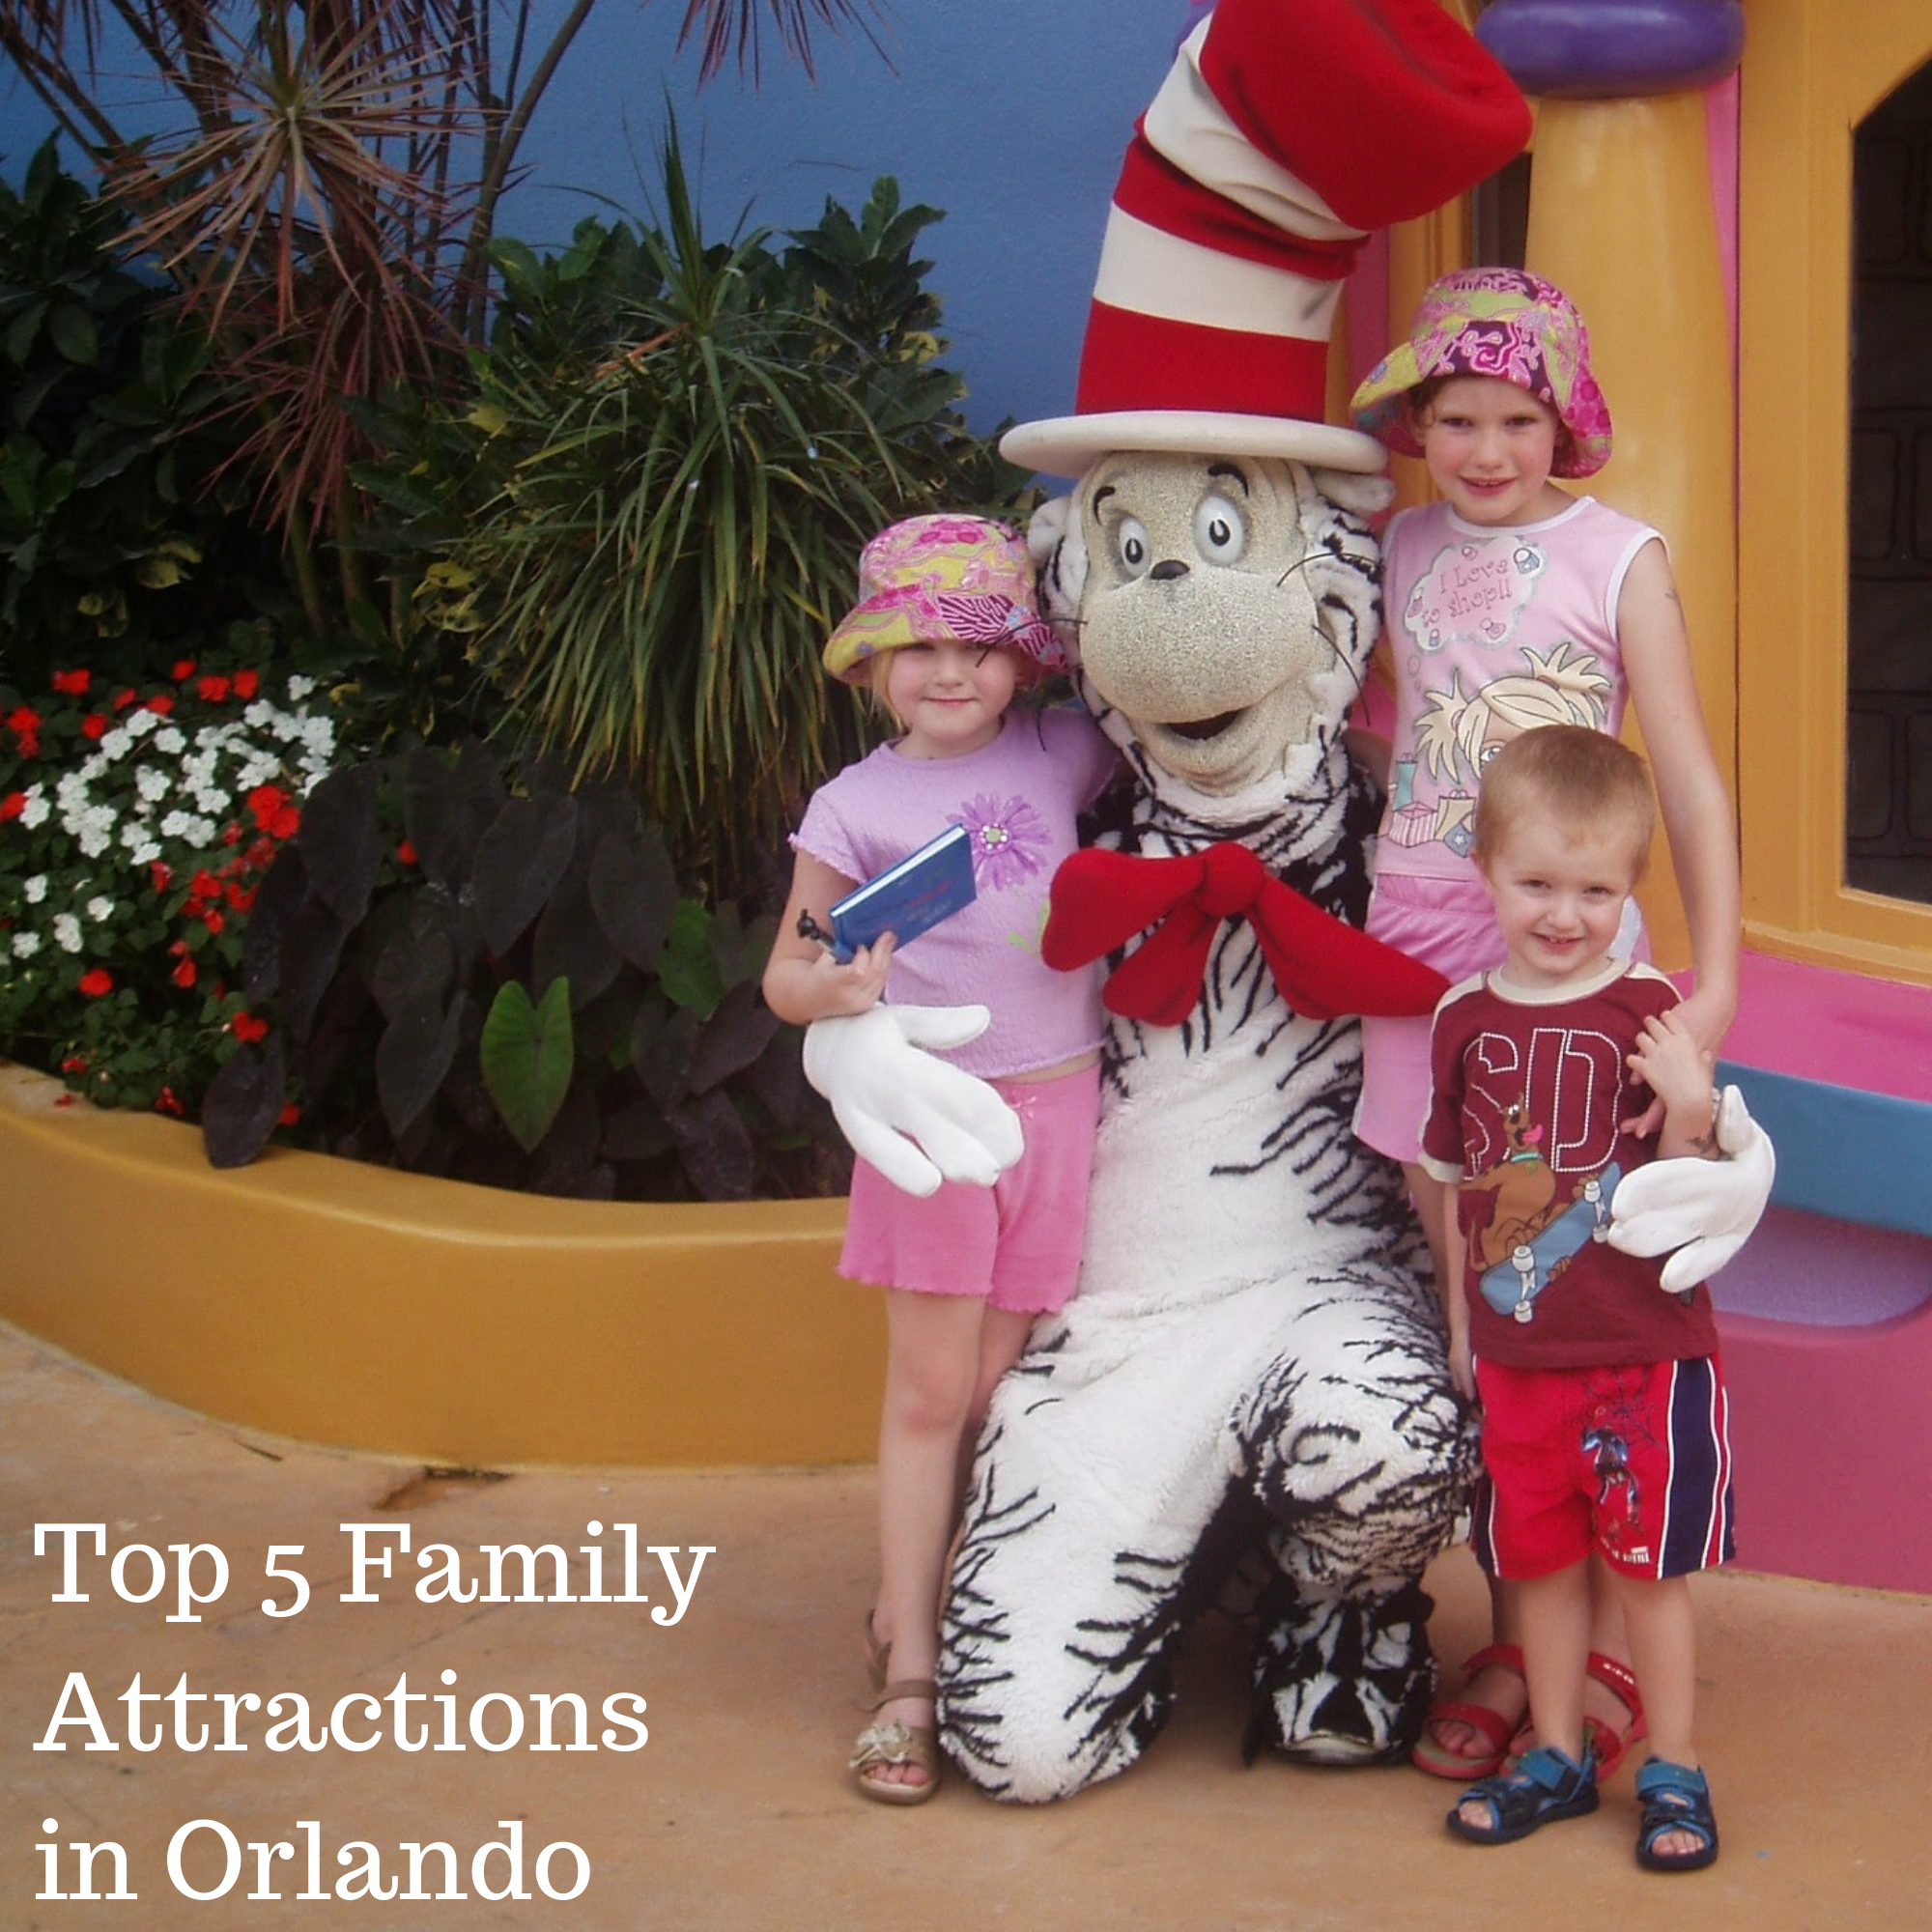 Top 5 Family Attractions in Orlando